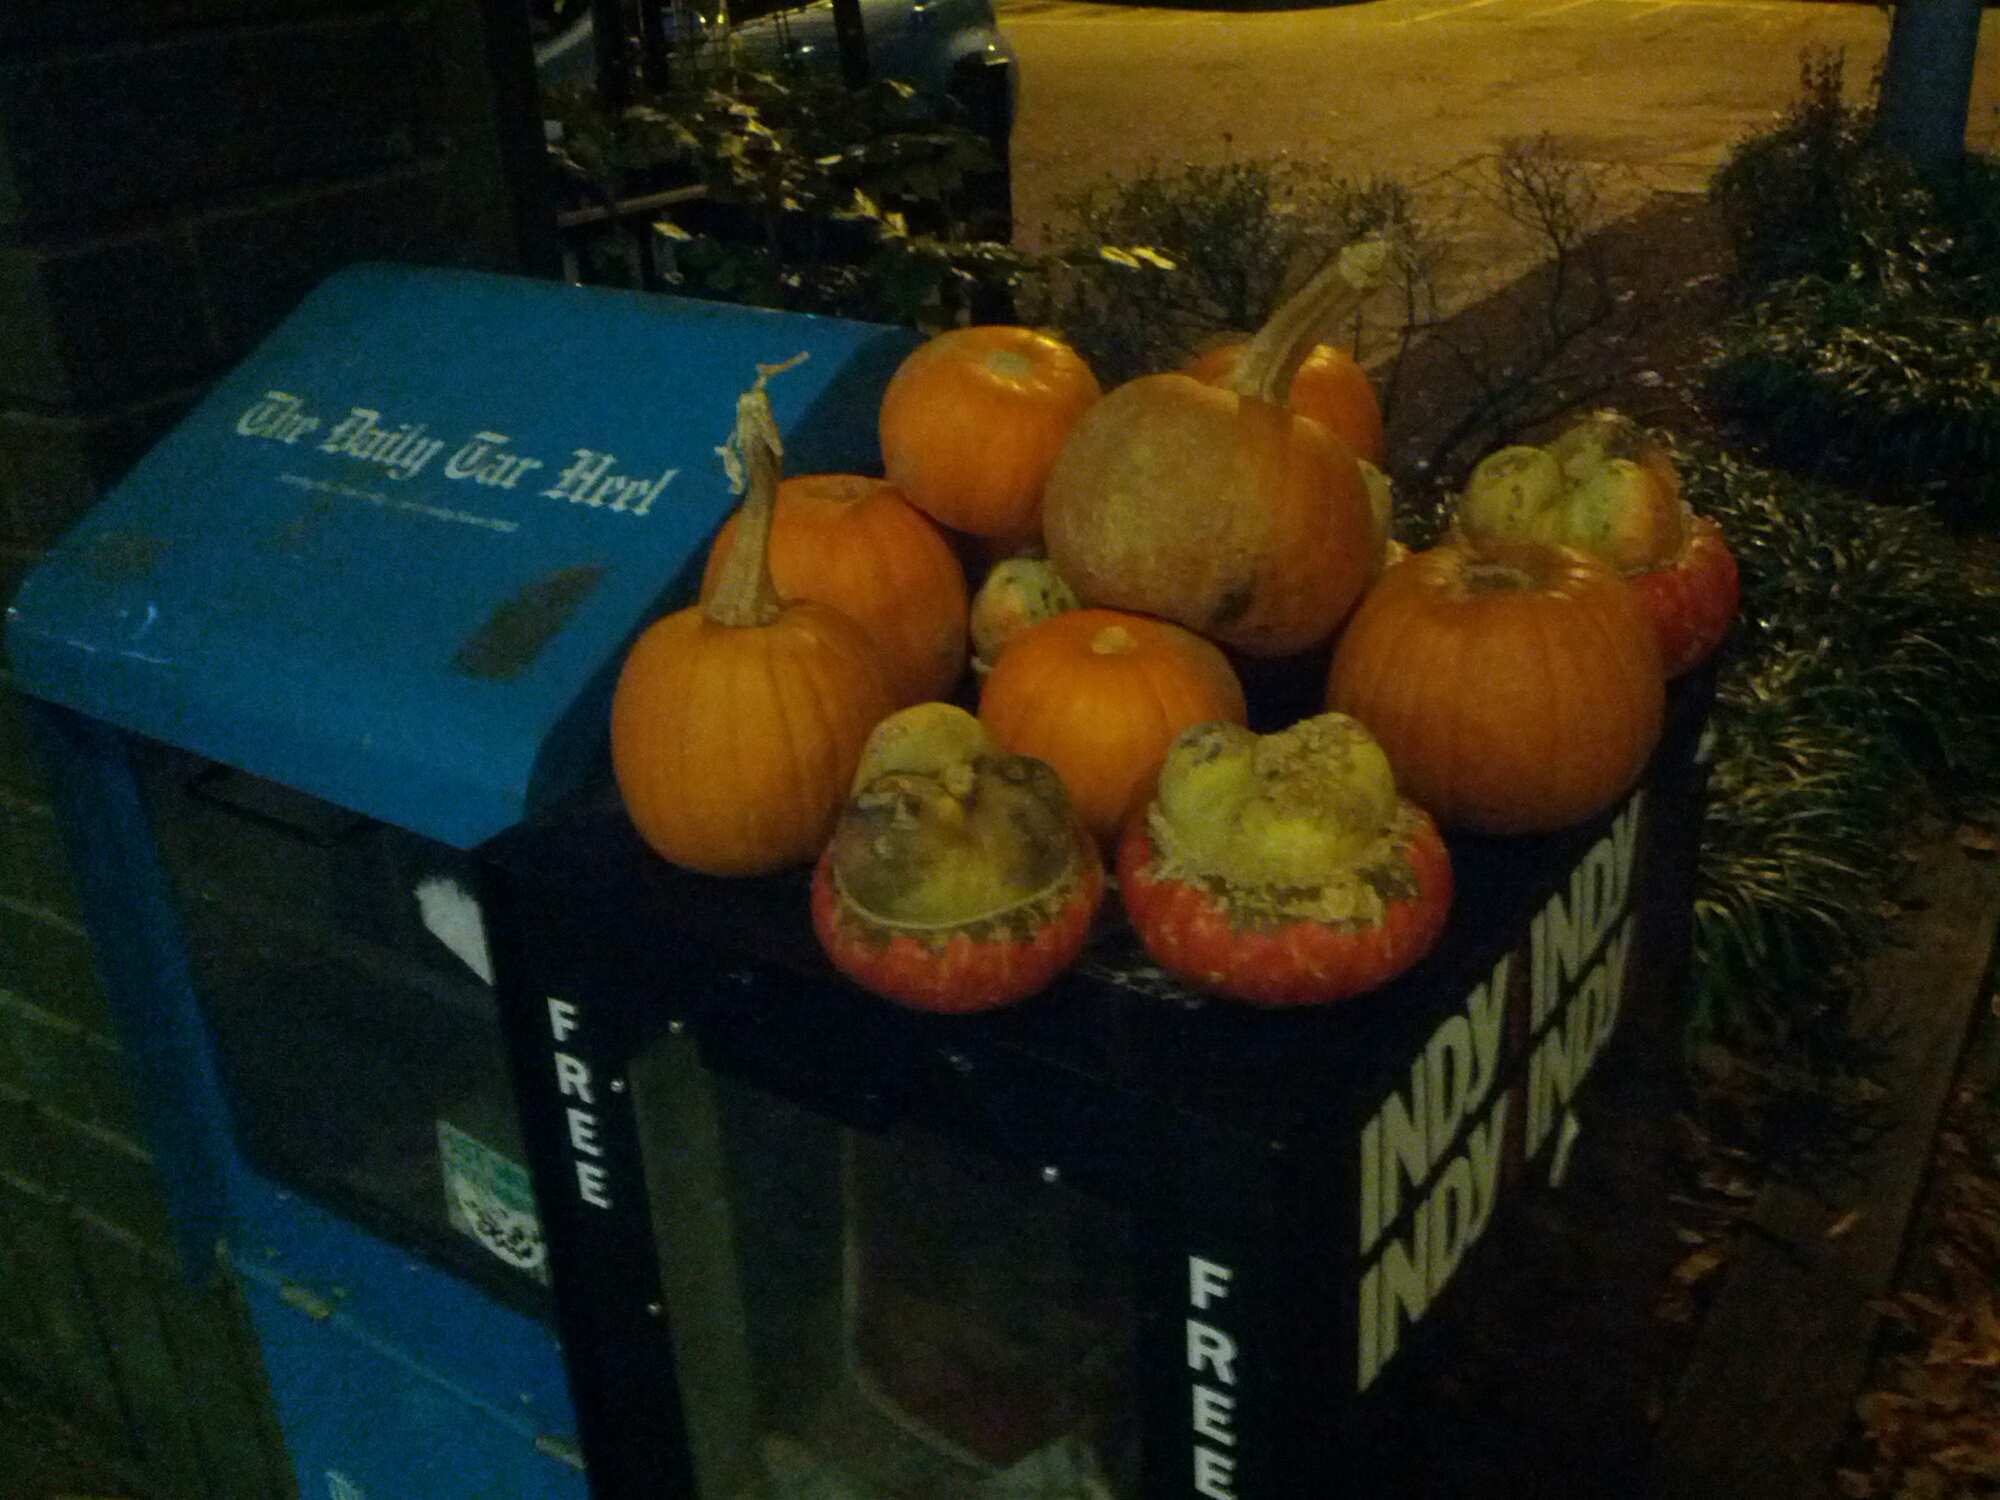 Looks like decorative gourd season is over